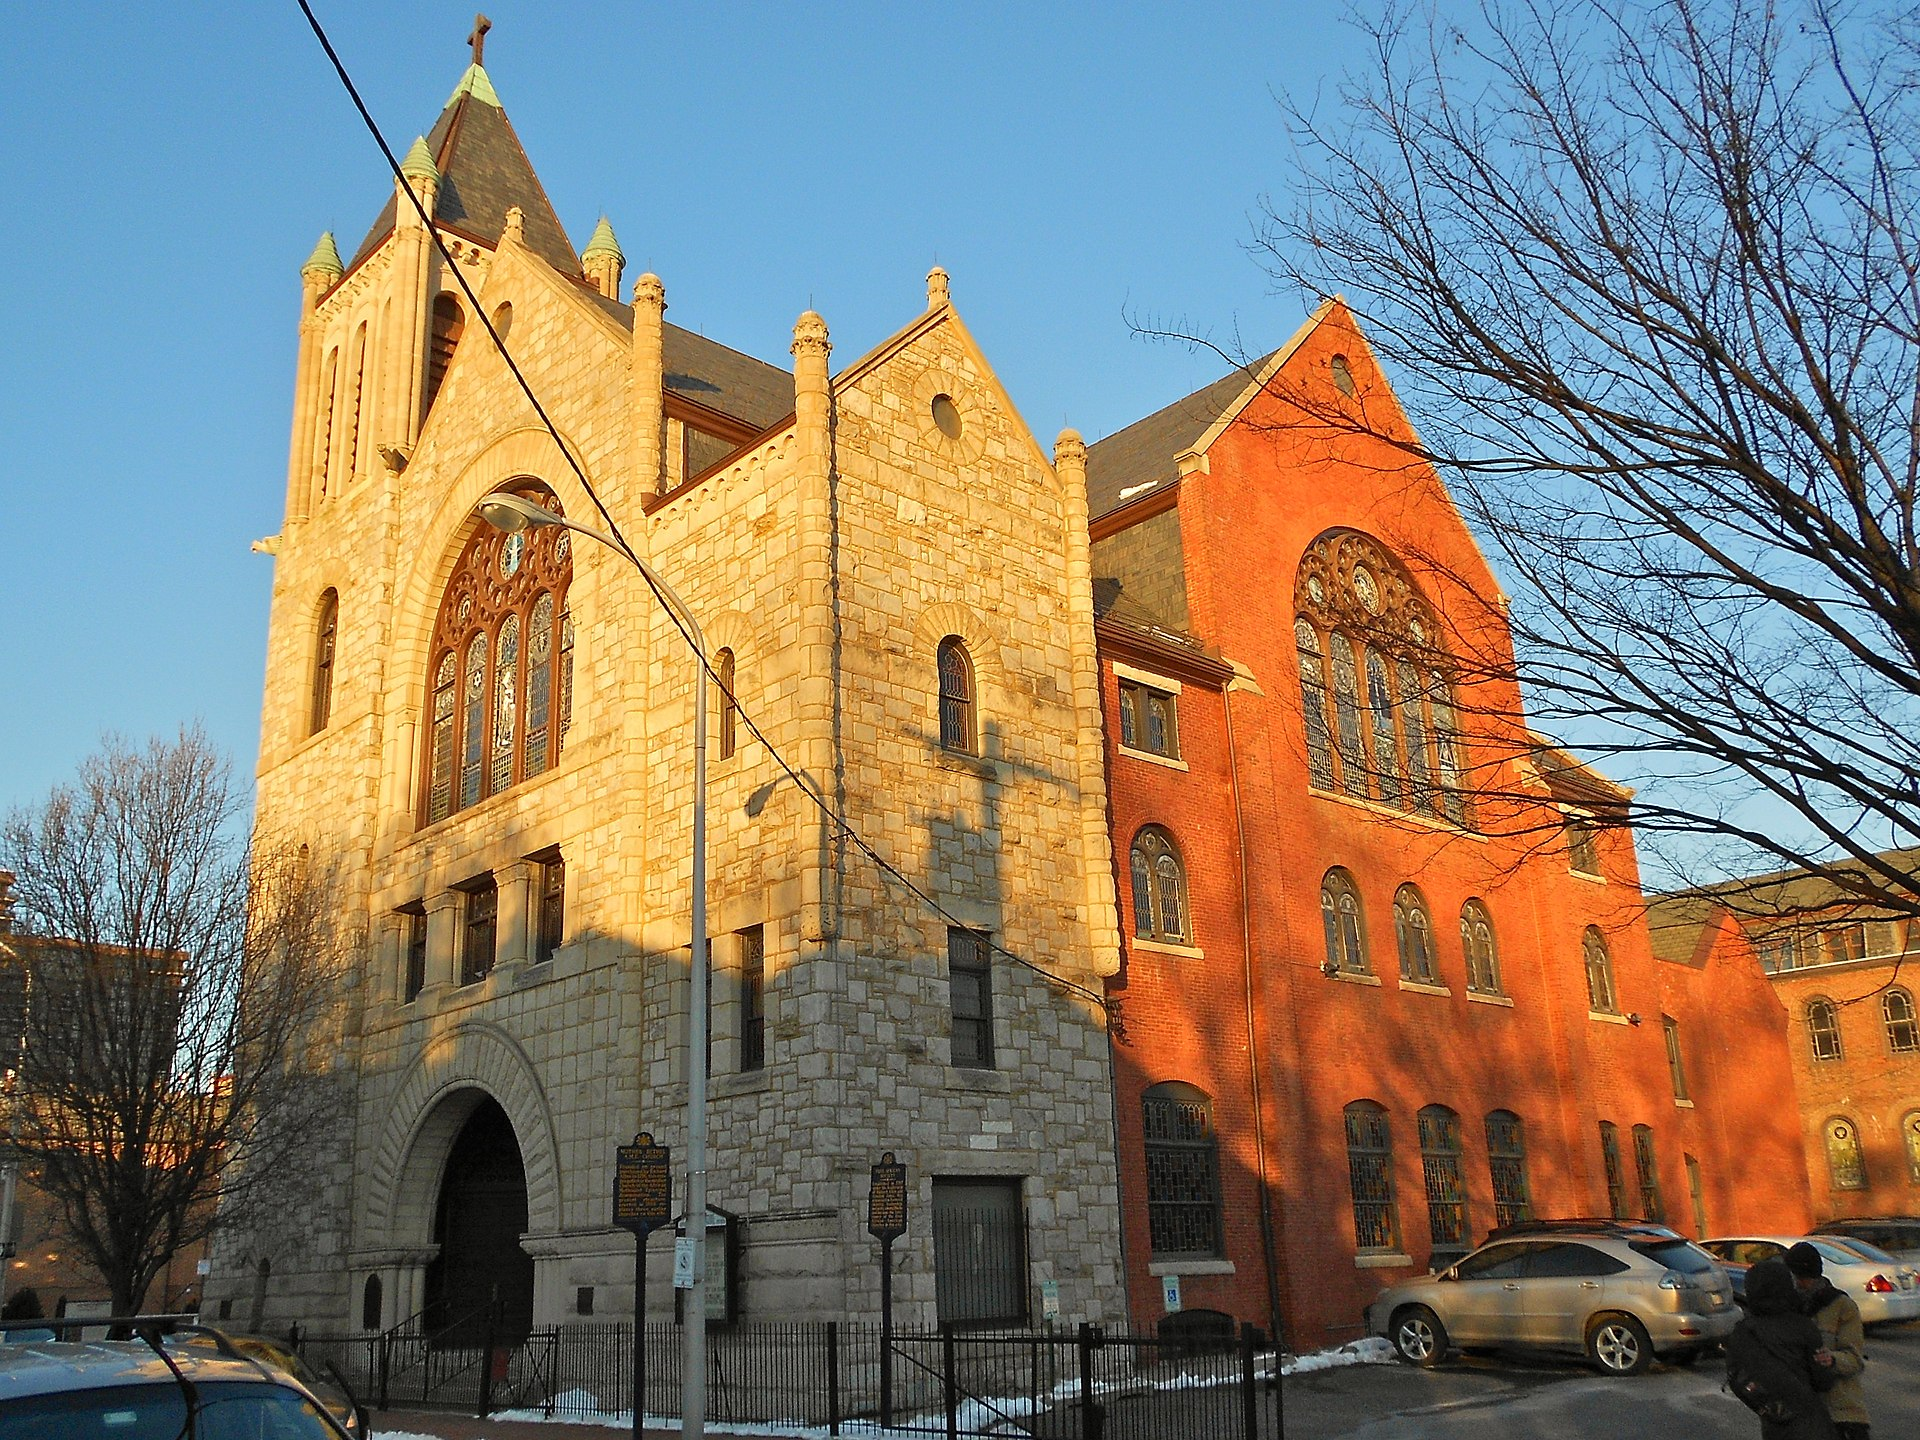 Mother Bethel A.M.E. Church listed on the NRHP on March 16, 1972 at 419 South 6th Street in the Society Hill neighborhood of Philadelphia/ Creative Commons